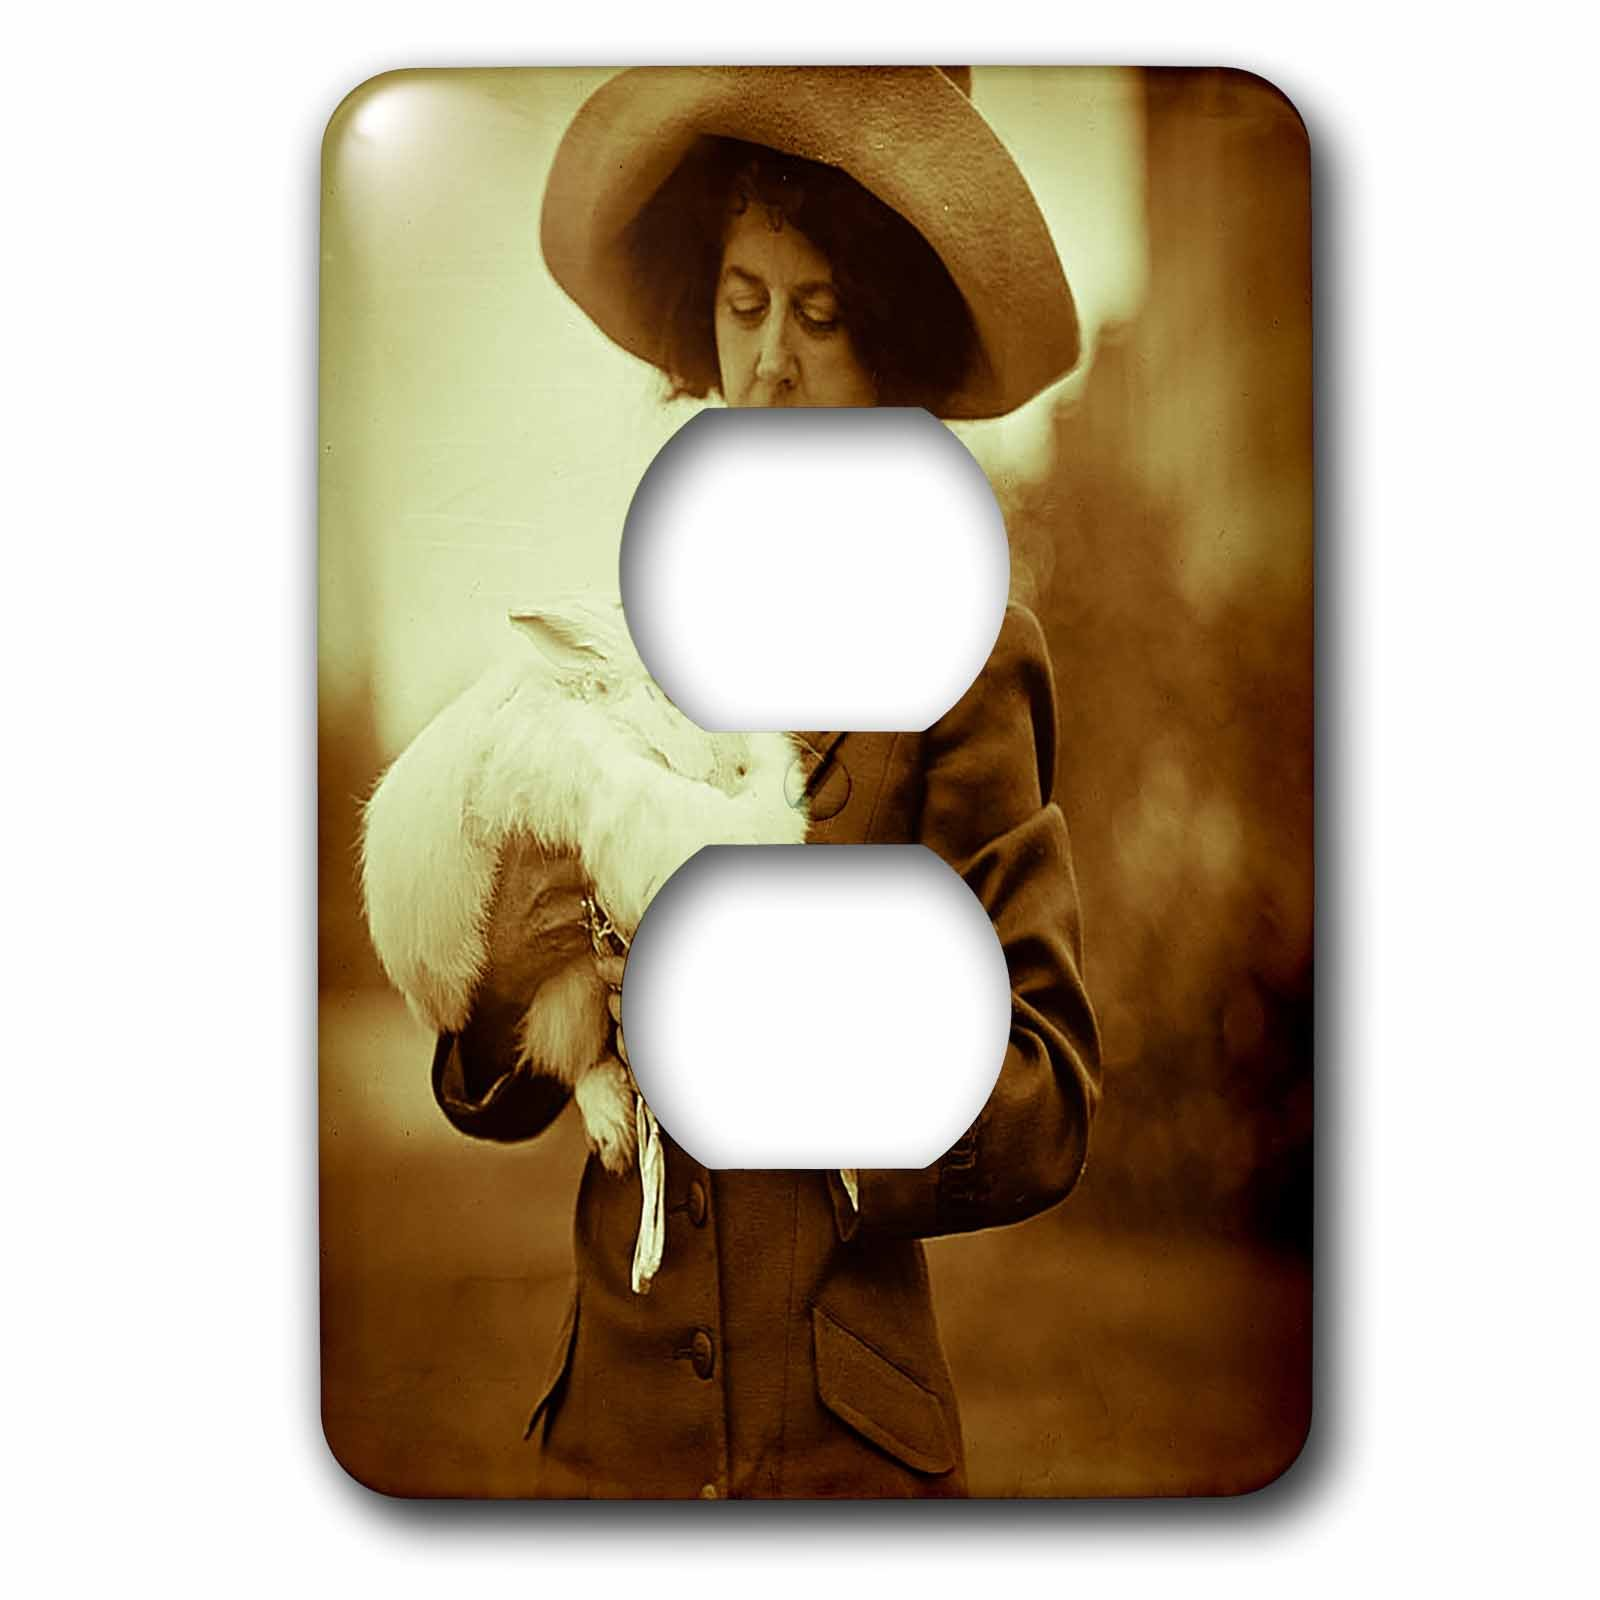 Scenes from the Past Vintage Photography - Vintage Woman with Giant Rabbit New Orleans Circa 1920 Sepia Tone - Light Switch Covers - 2 plug outlet cover (lsp_244028_6)